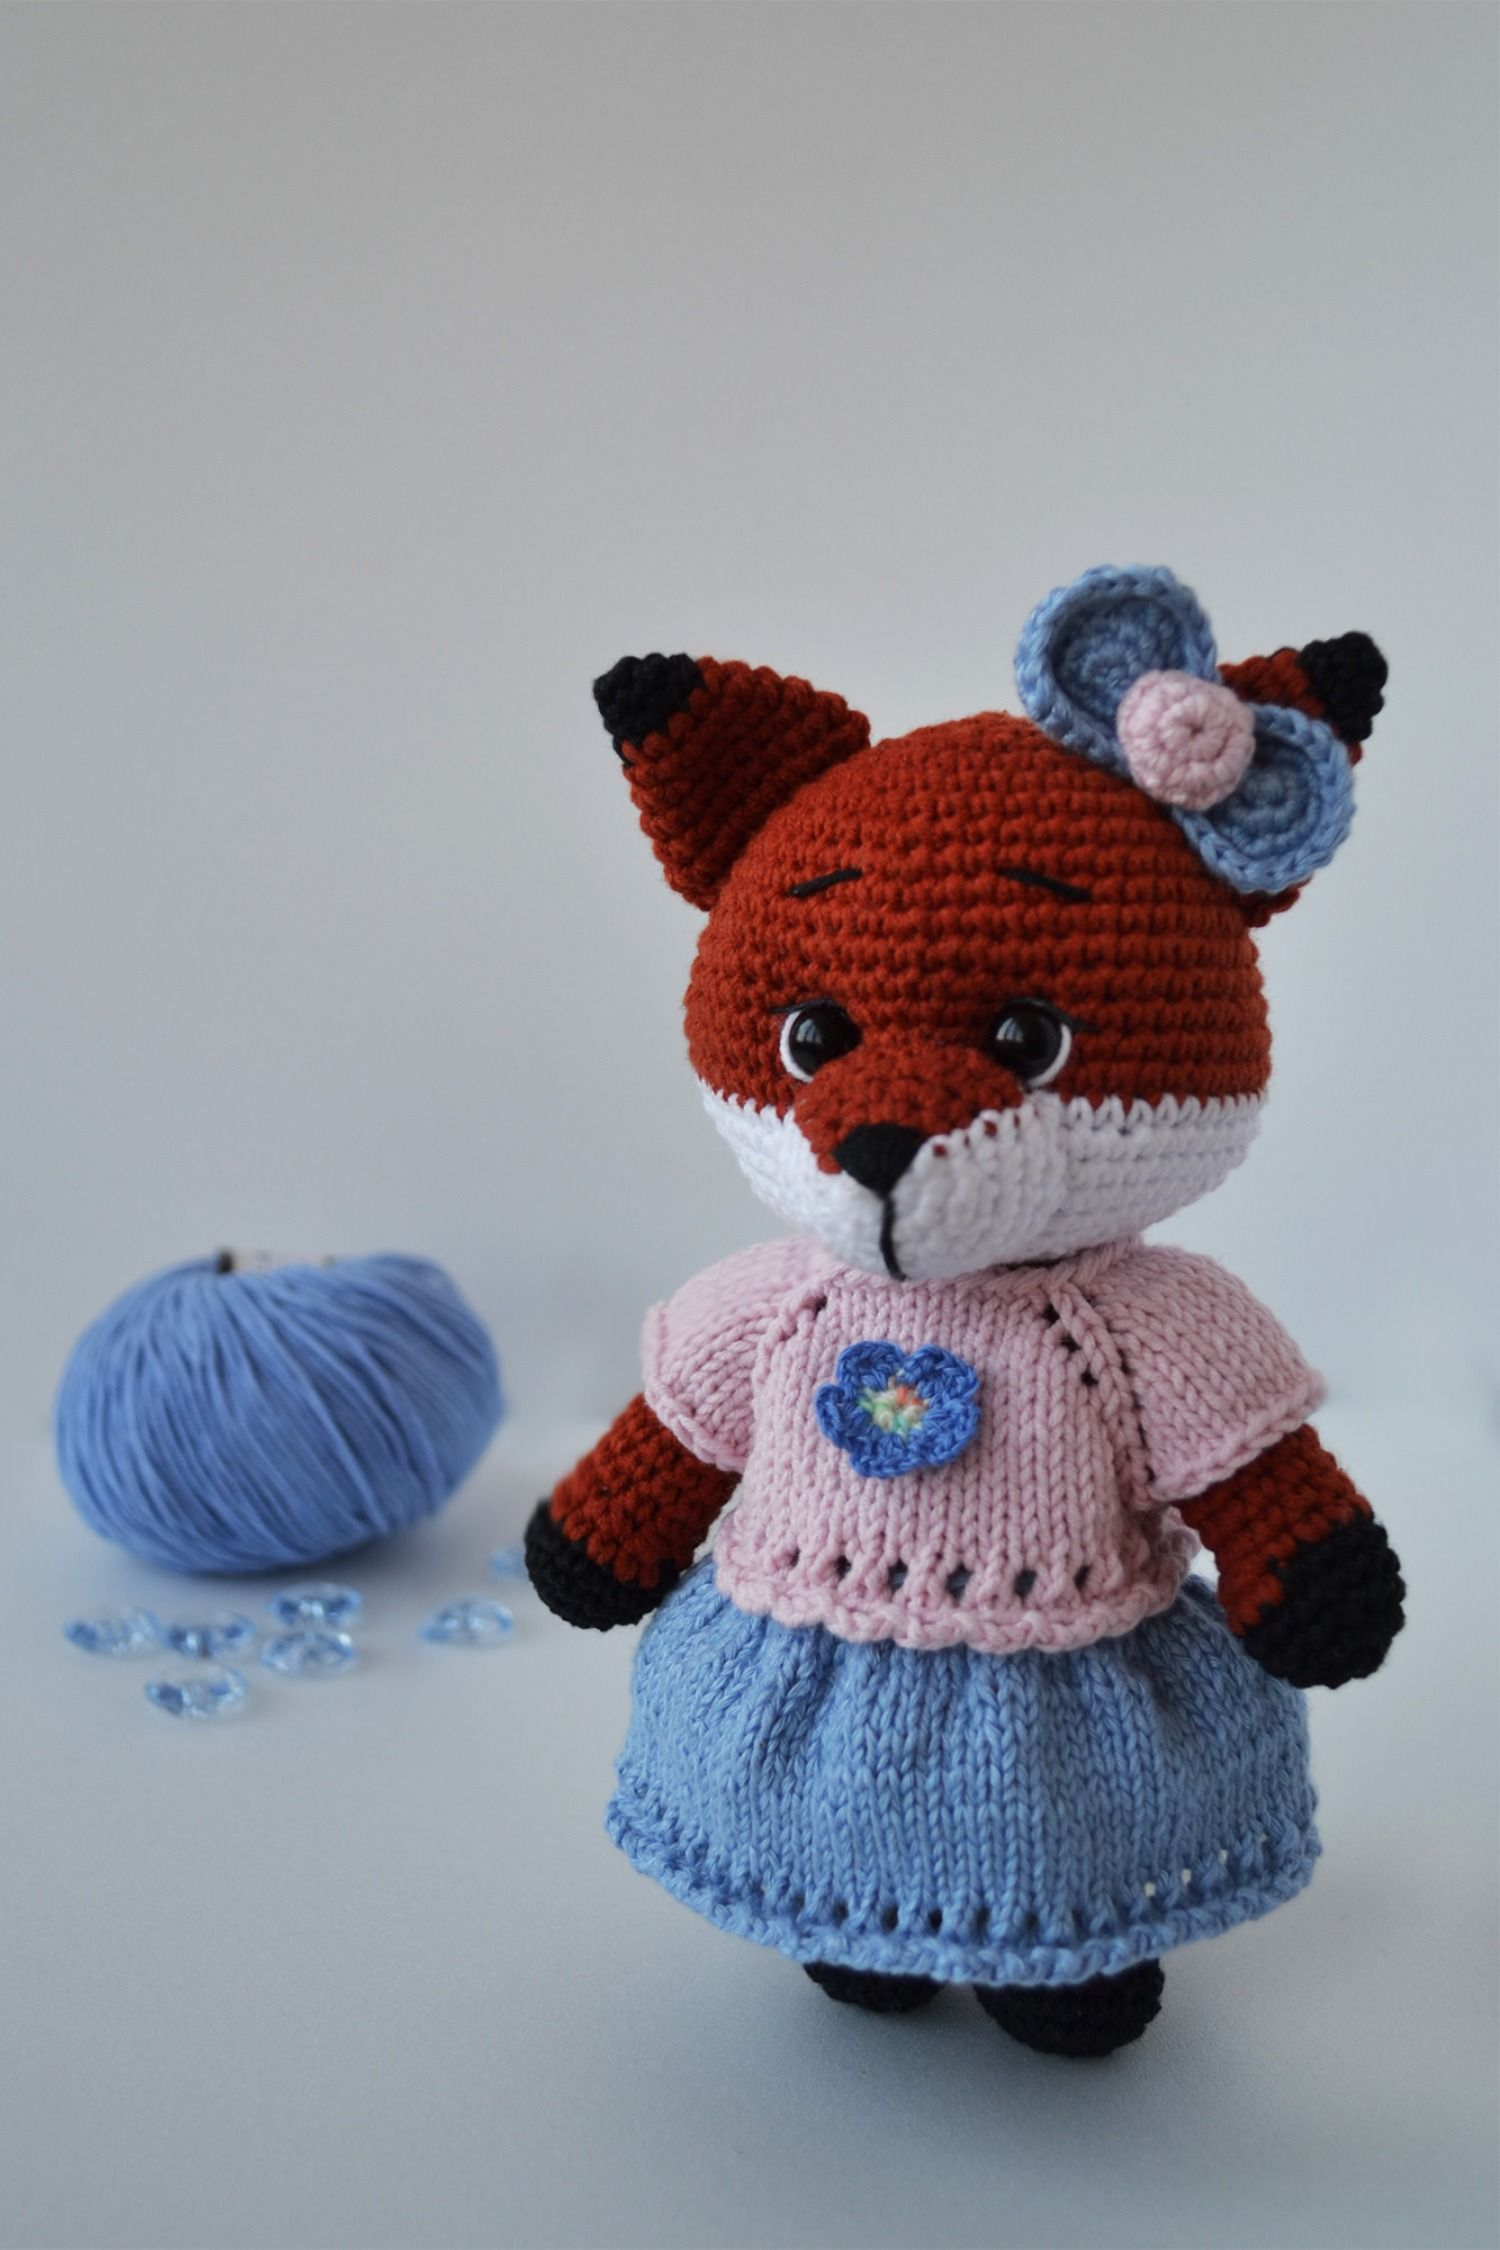 Amigurumi Cute Fox Crochet Pattern » Amigurumi Crochet Patterns By ... | 2250x1500